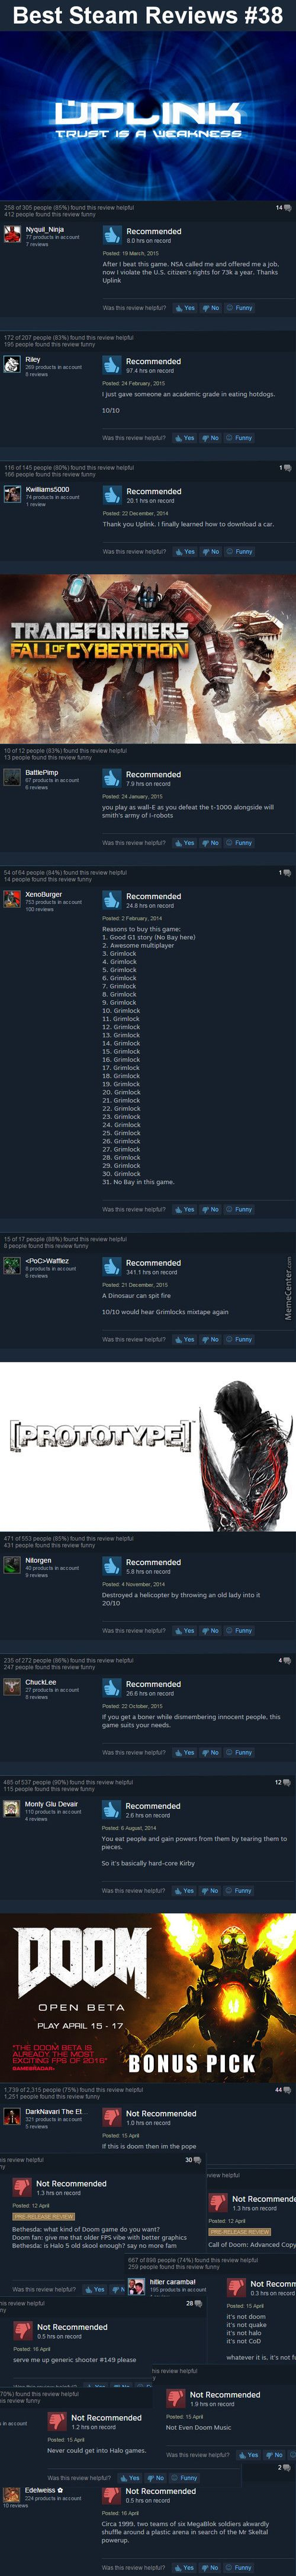 Best Steam Reviews #38 - Told You Shadow Warrior 2 Would Be The Better Game!     #Meme #FunnyMeme